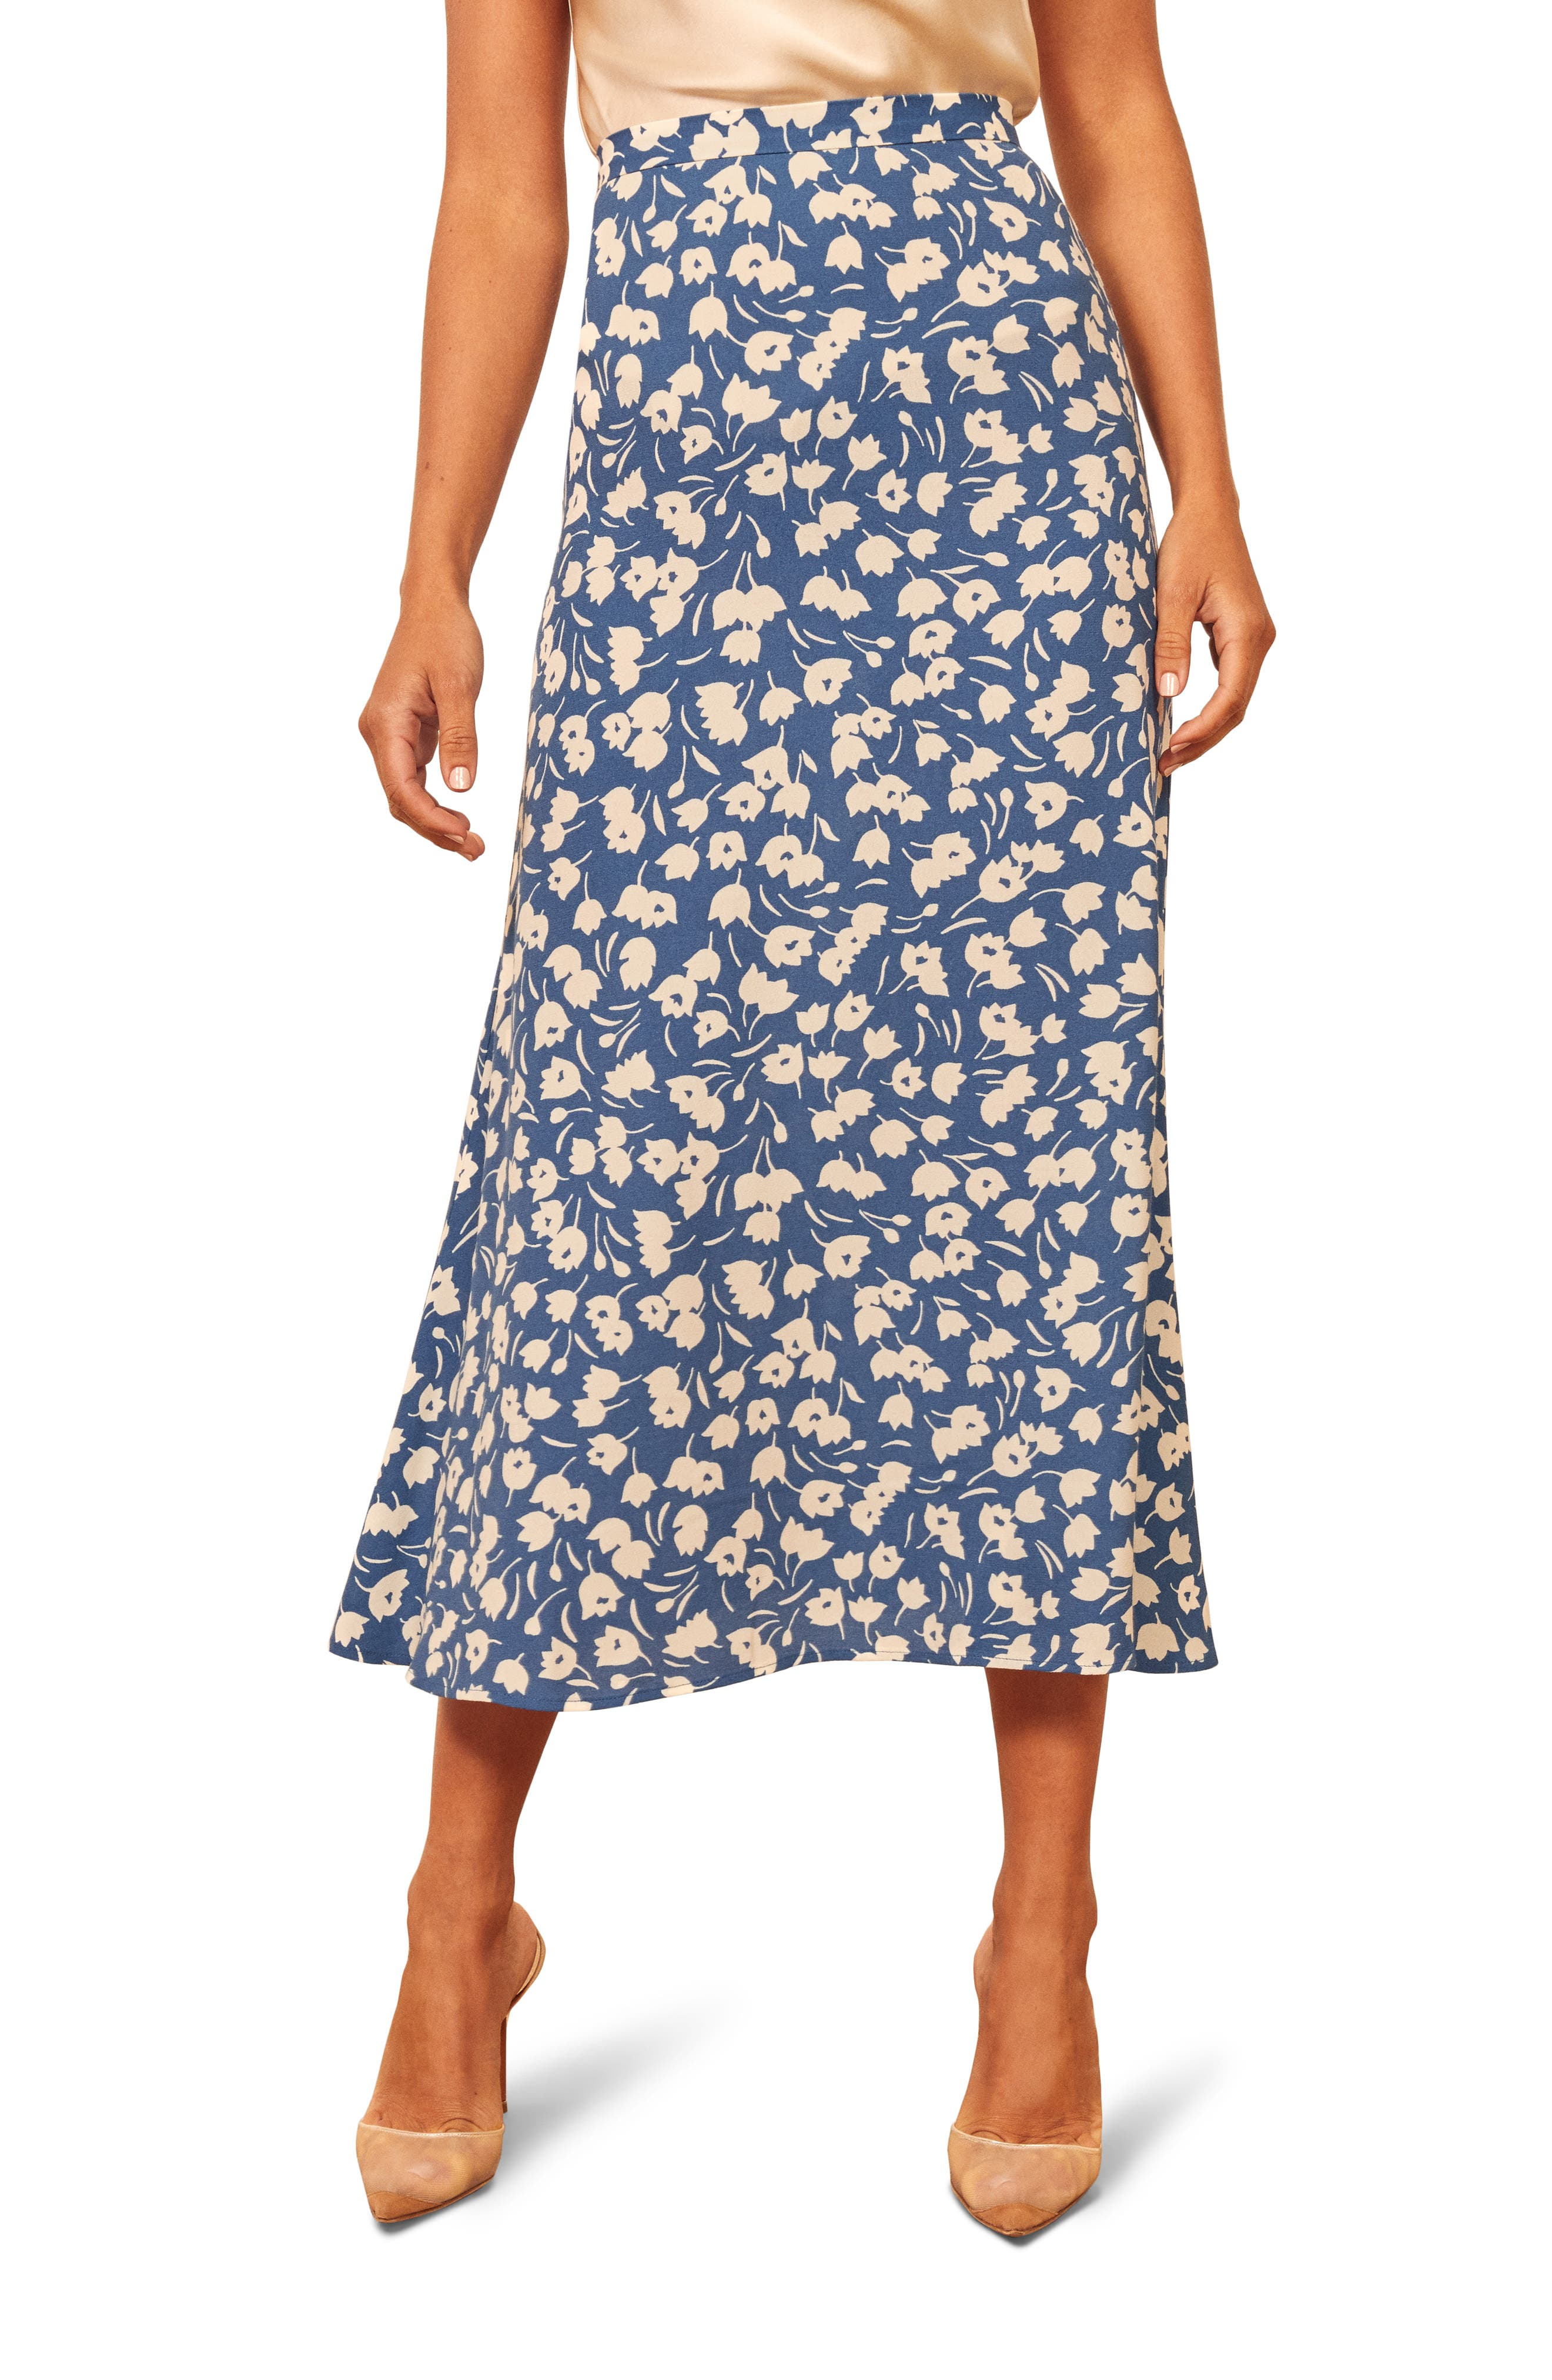 A choice of fresh prints enlivens a retro-inspired skirt cut with swingy flair and styled with a nipped-in, high waist for a flattering, ladylike look. Style Name: Reformation Bea Midi Skirt (Regular & Plus Size). Style Number: 5649715 1. Available in stores.